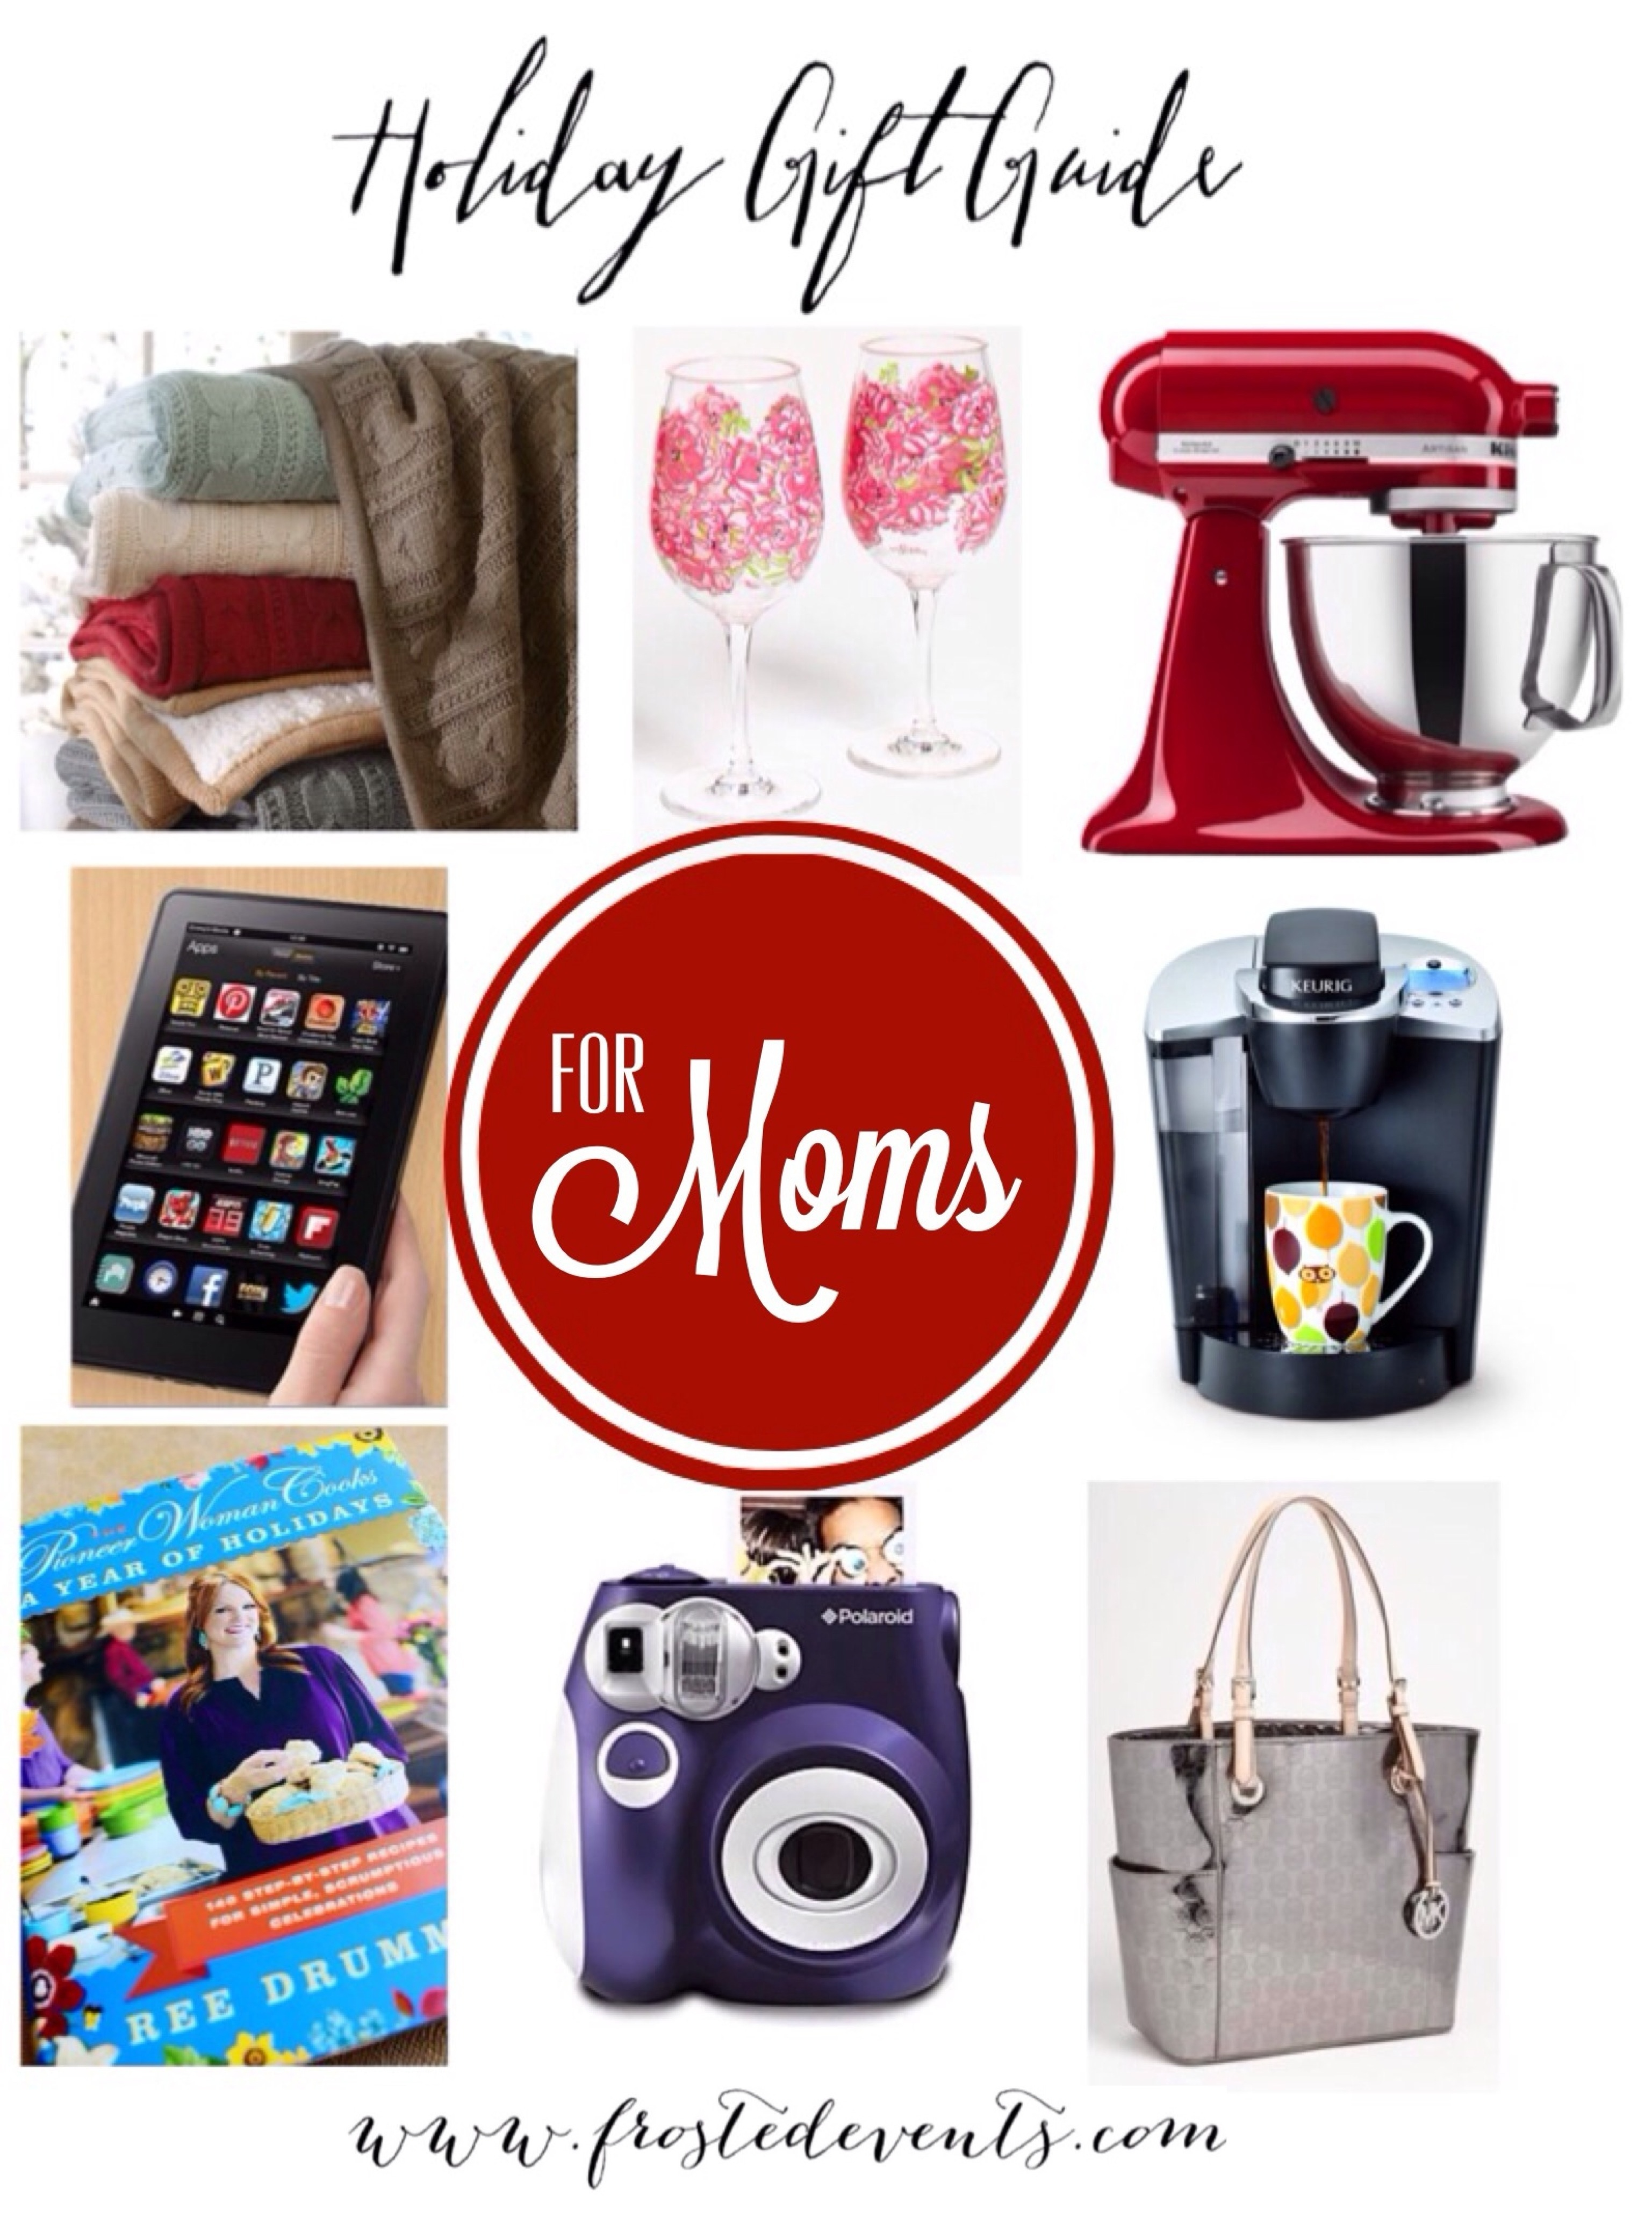 Christmas Gifts For Mom Homemade.Holiday Gifts For Moms